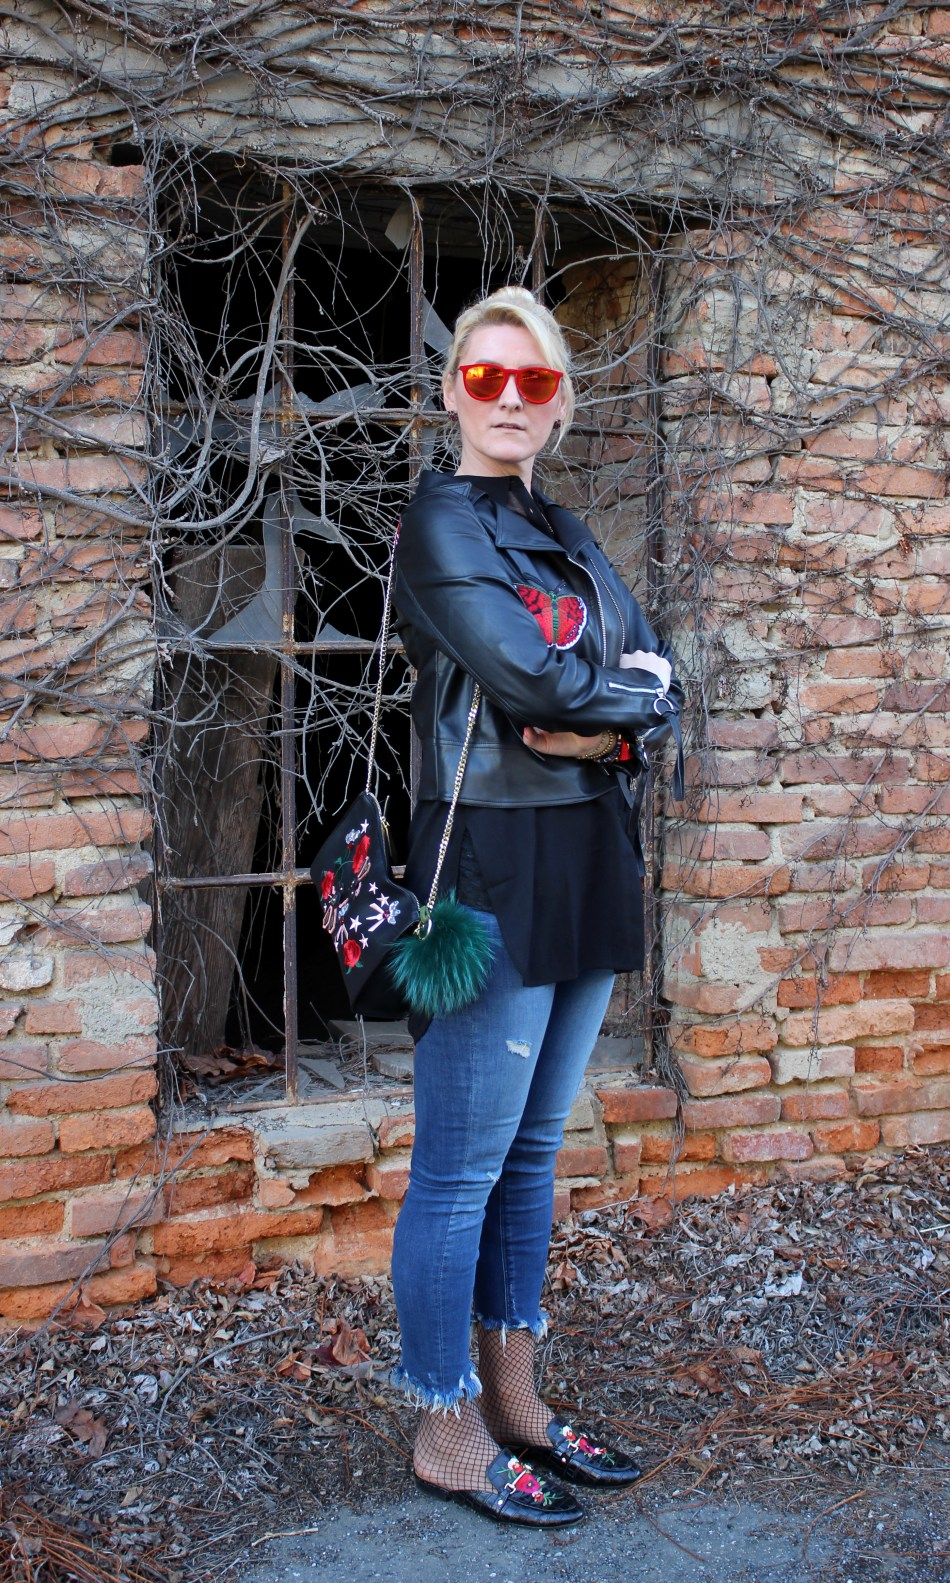 Embroidered-Floral-Print-Leather-Jacket-Denim-Fringed-Gucci-Slippers-carrieslifestyle-Tamara-Prutsch